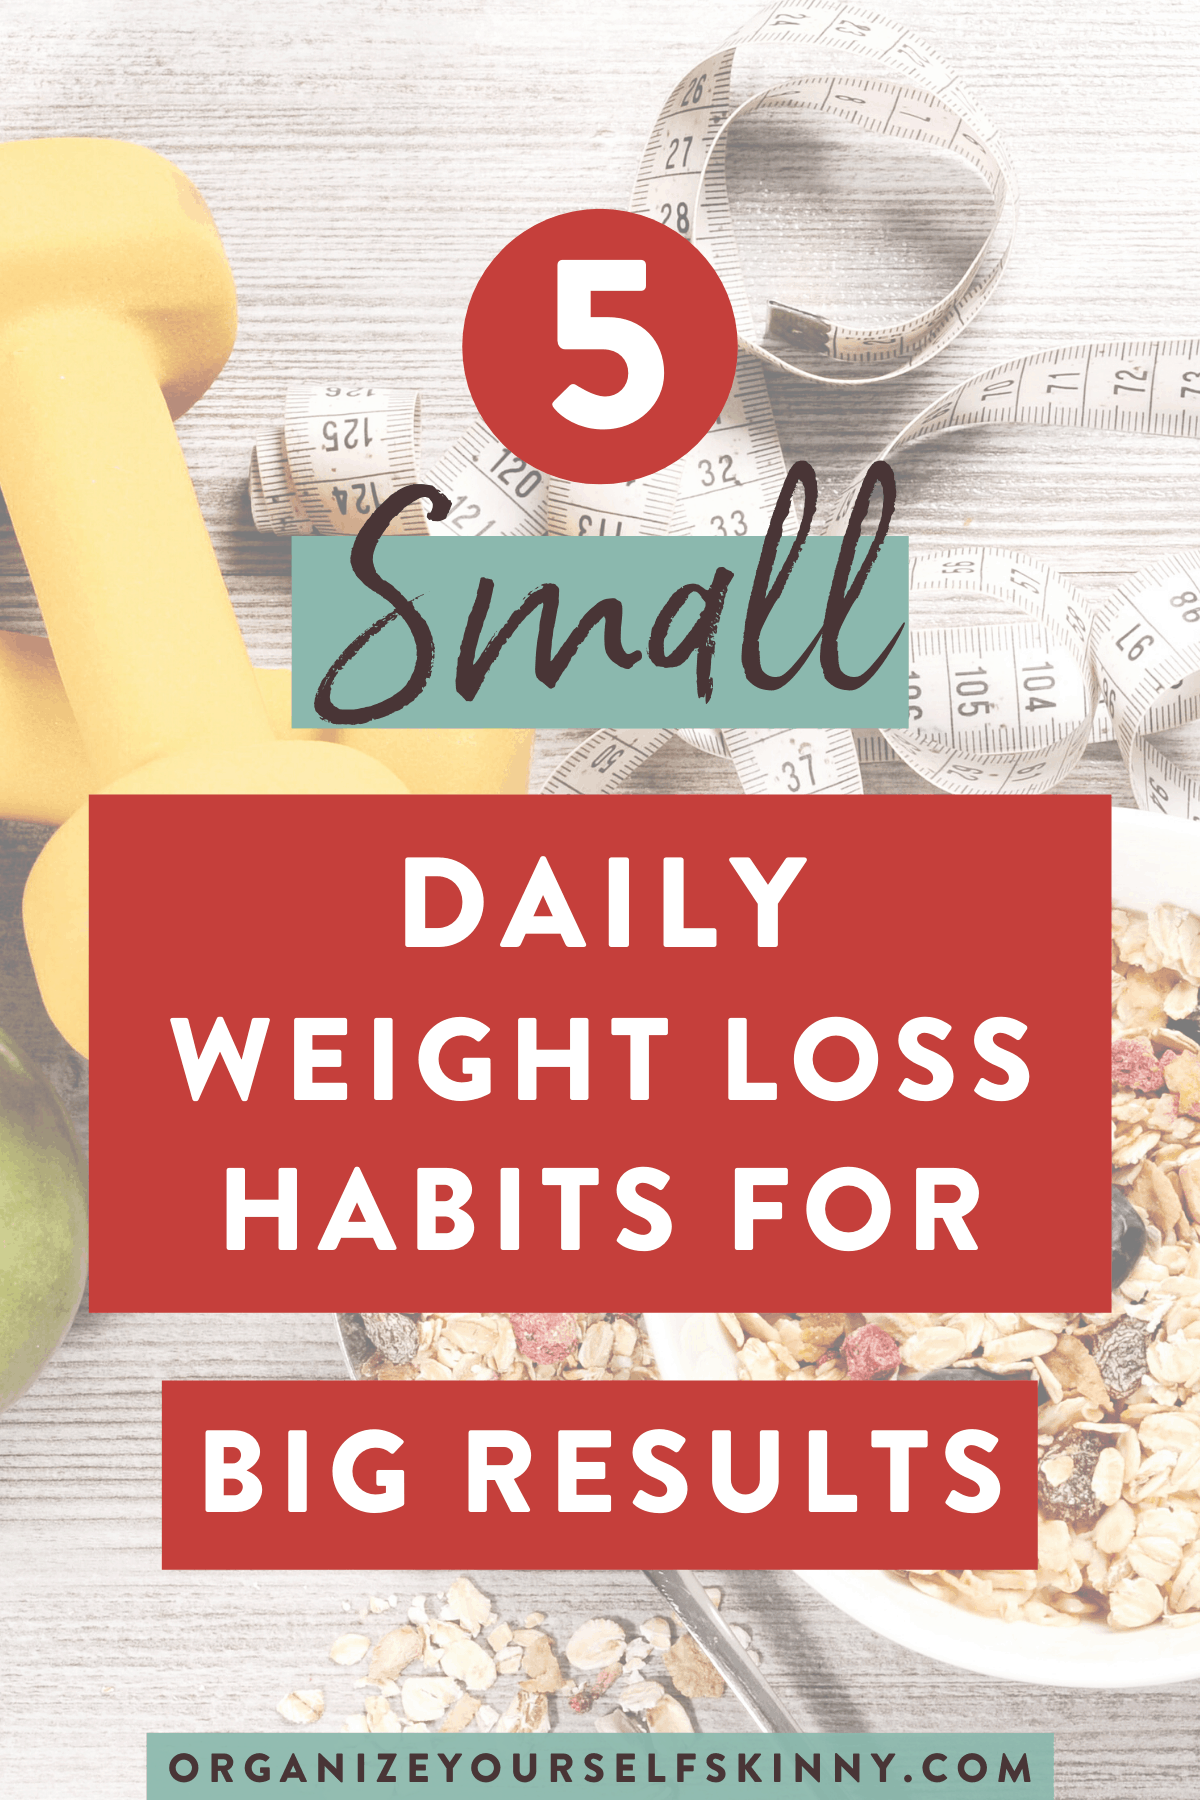 small-daily-weight-loss-habits-for-big-results